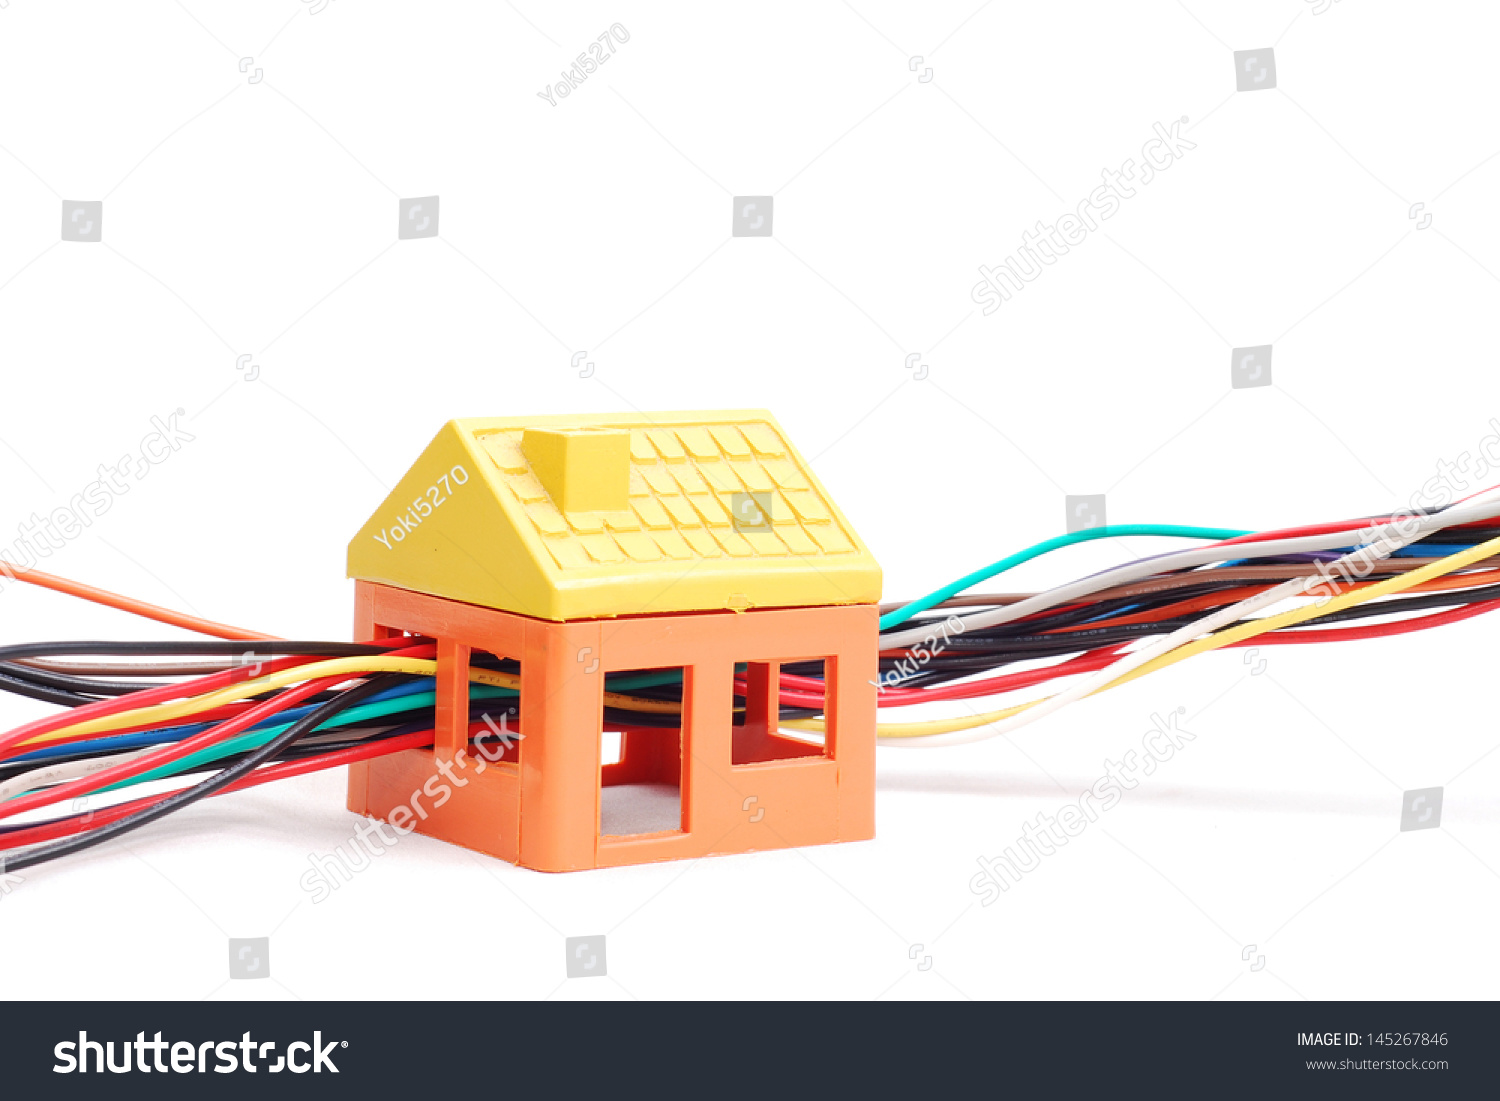 electric wires string through the model house